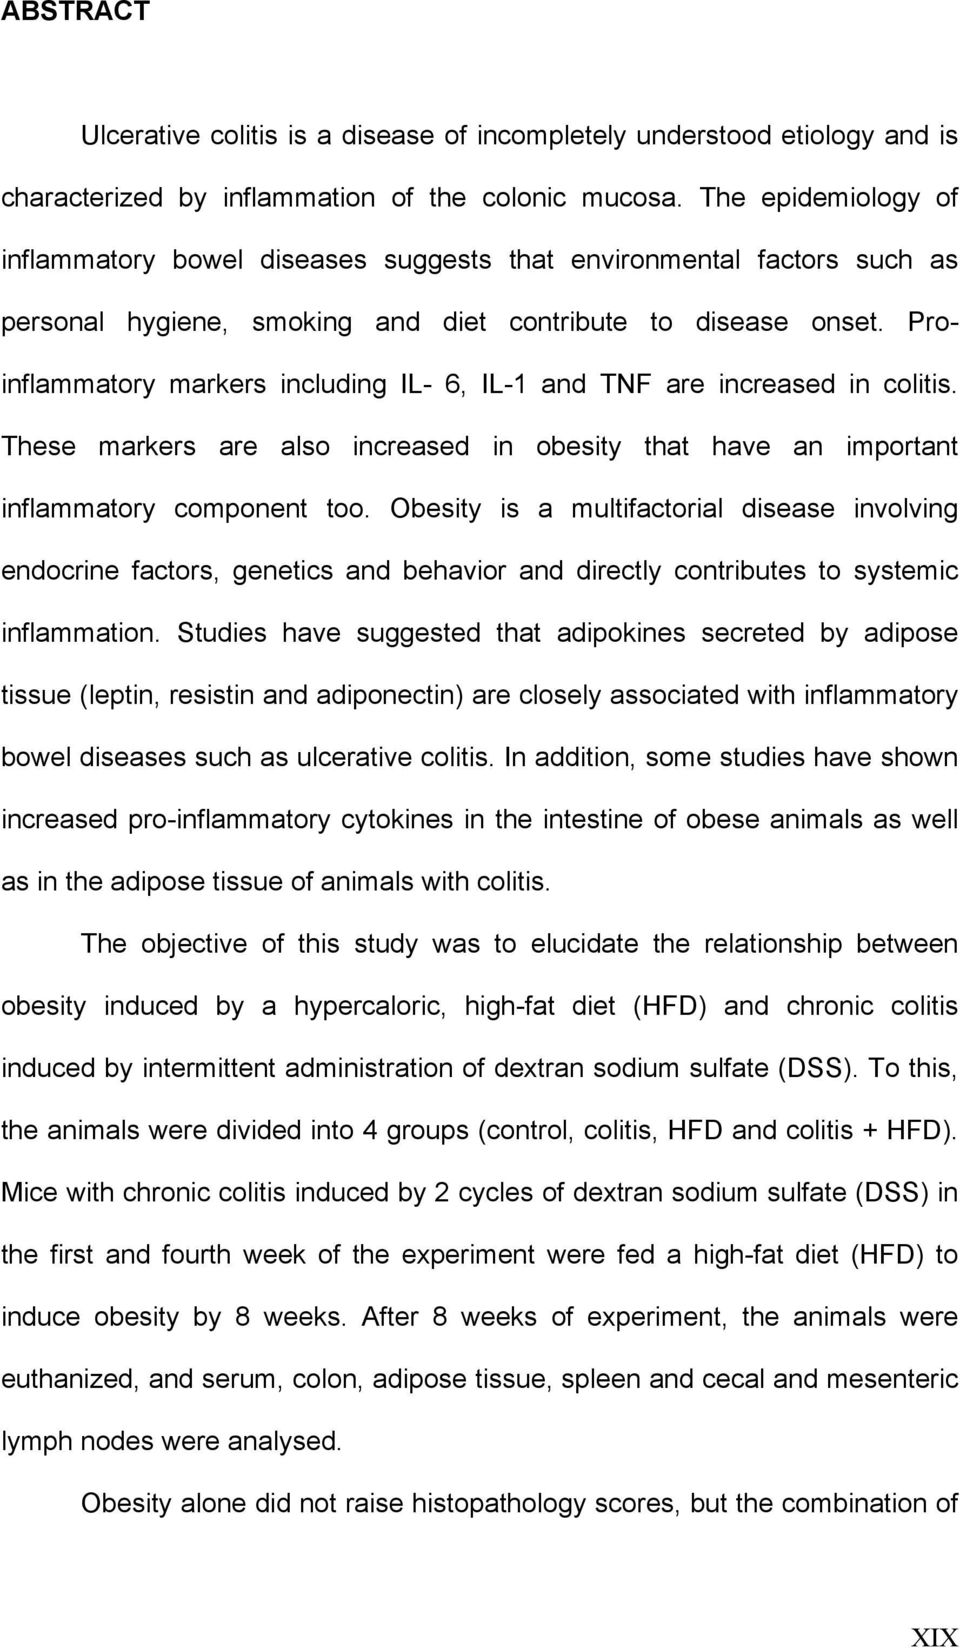 Proinflmmtory mrkers including IL- 6, IL-1 nd TNF re incresed in colitis. These mrkers re lso incresed in obesity tht hve n importnt inflmmtory component too.